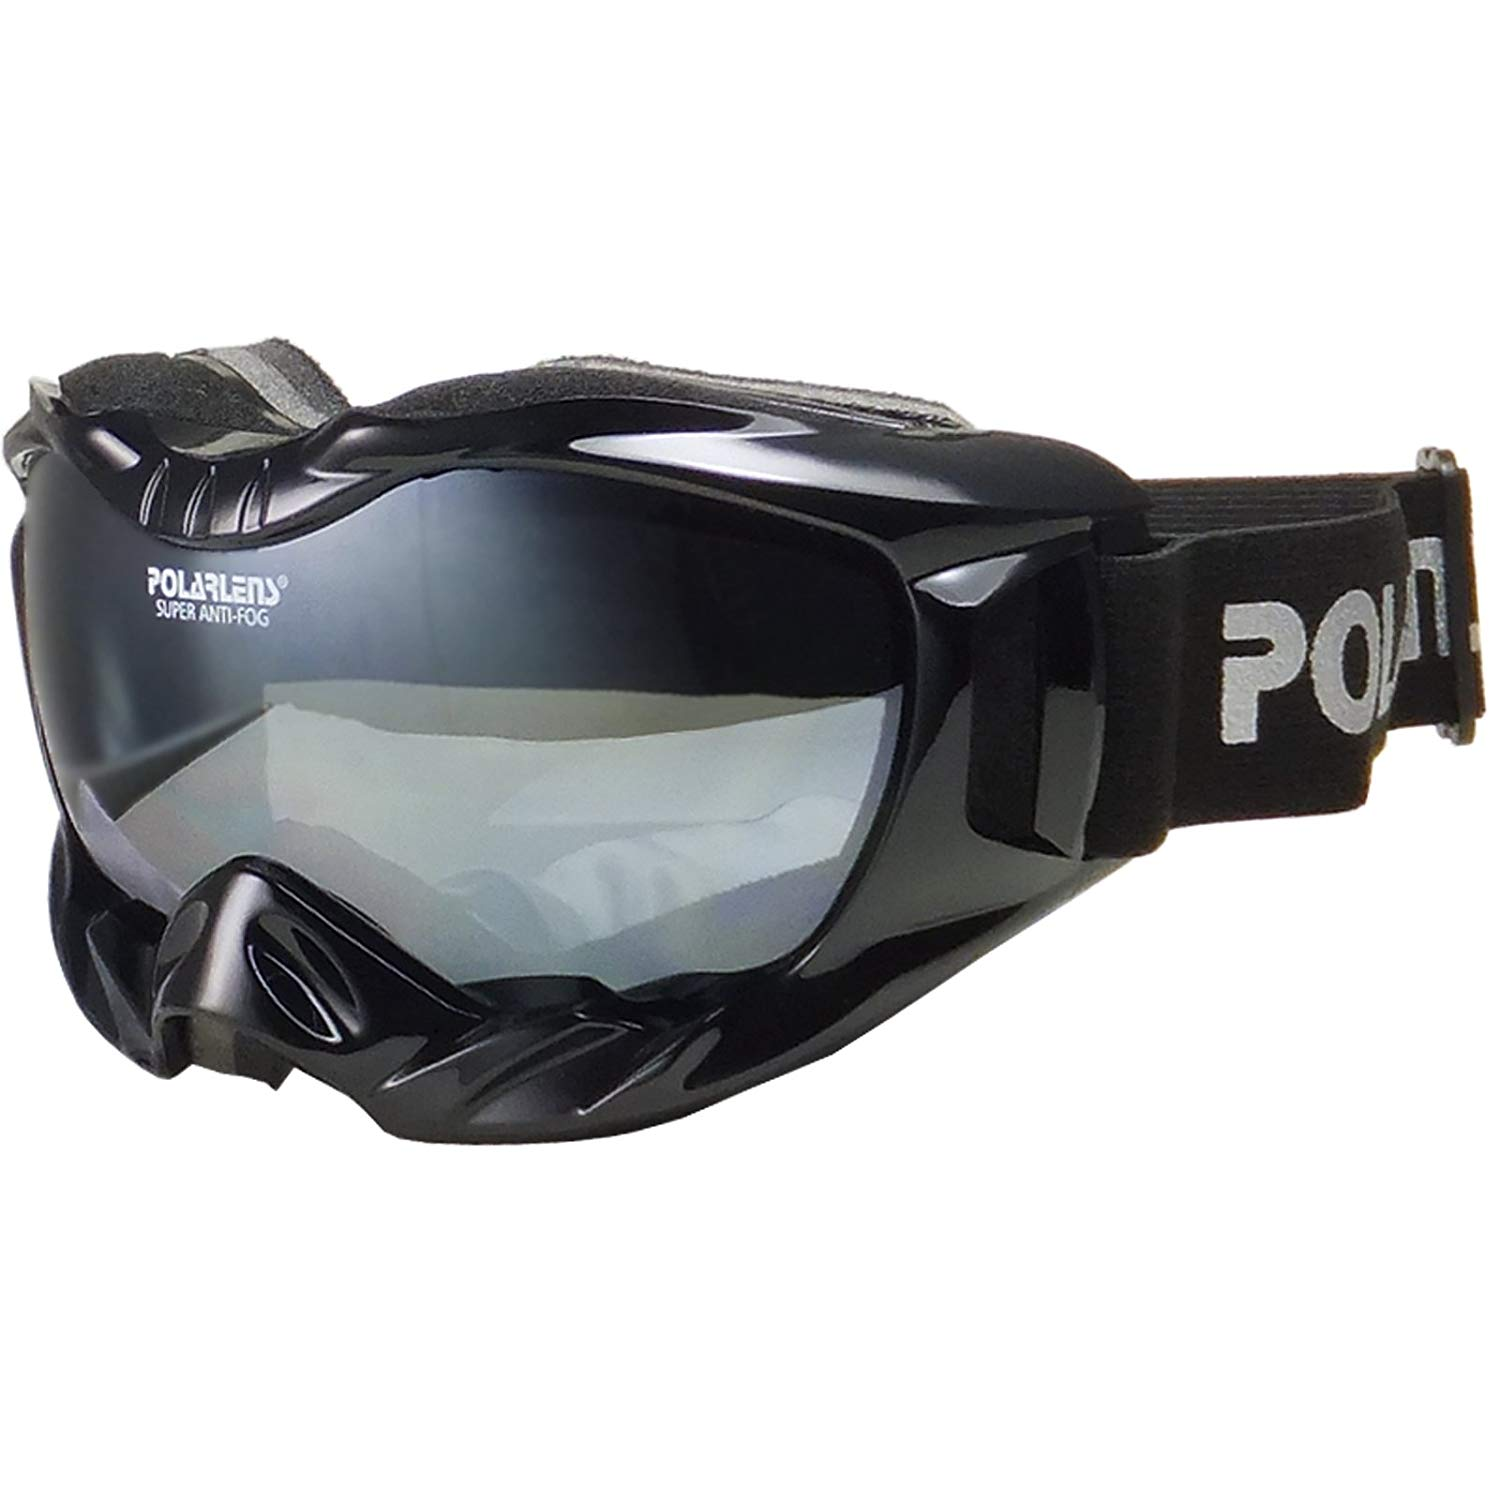 ac167b00c3 Get Quotations · Polarlens PG36 German Engineered Ski Goggles